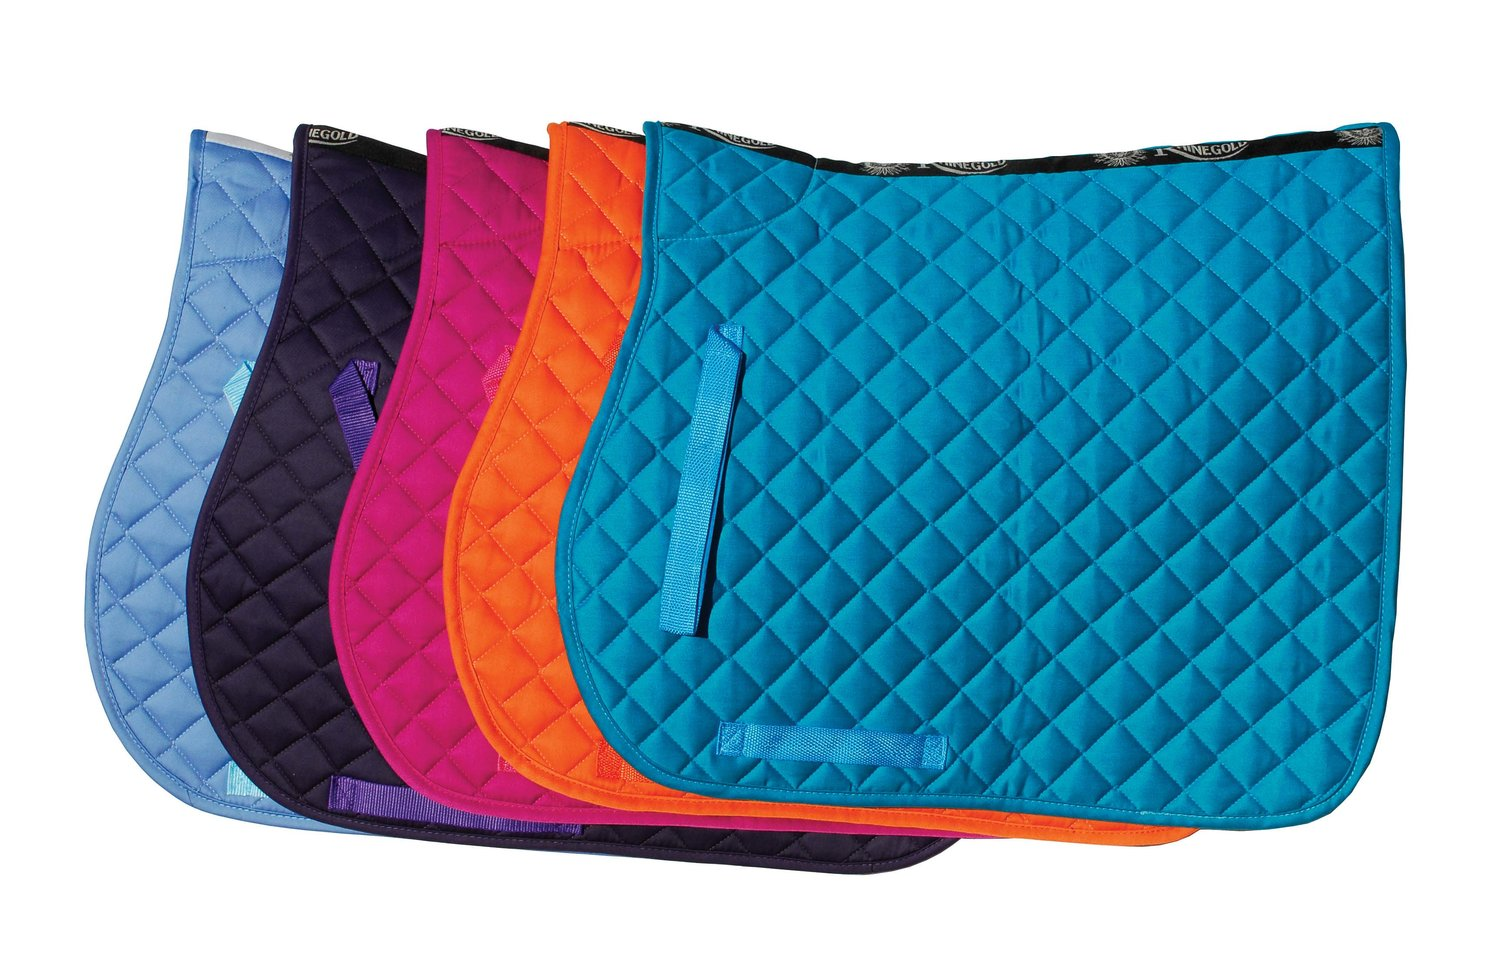 Cotton Quilted saddle cloth - £21.50 including 1 logo embroideryAvailable in Pony, Cob, FullAvailable in 11 colours